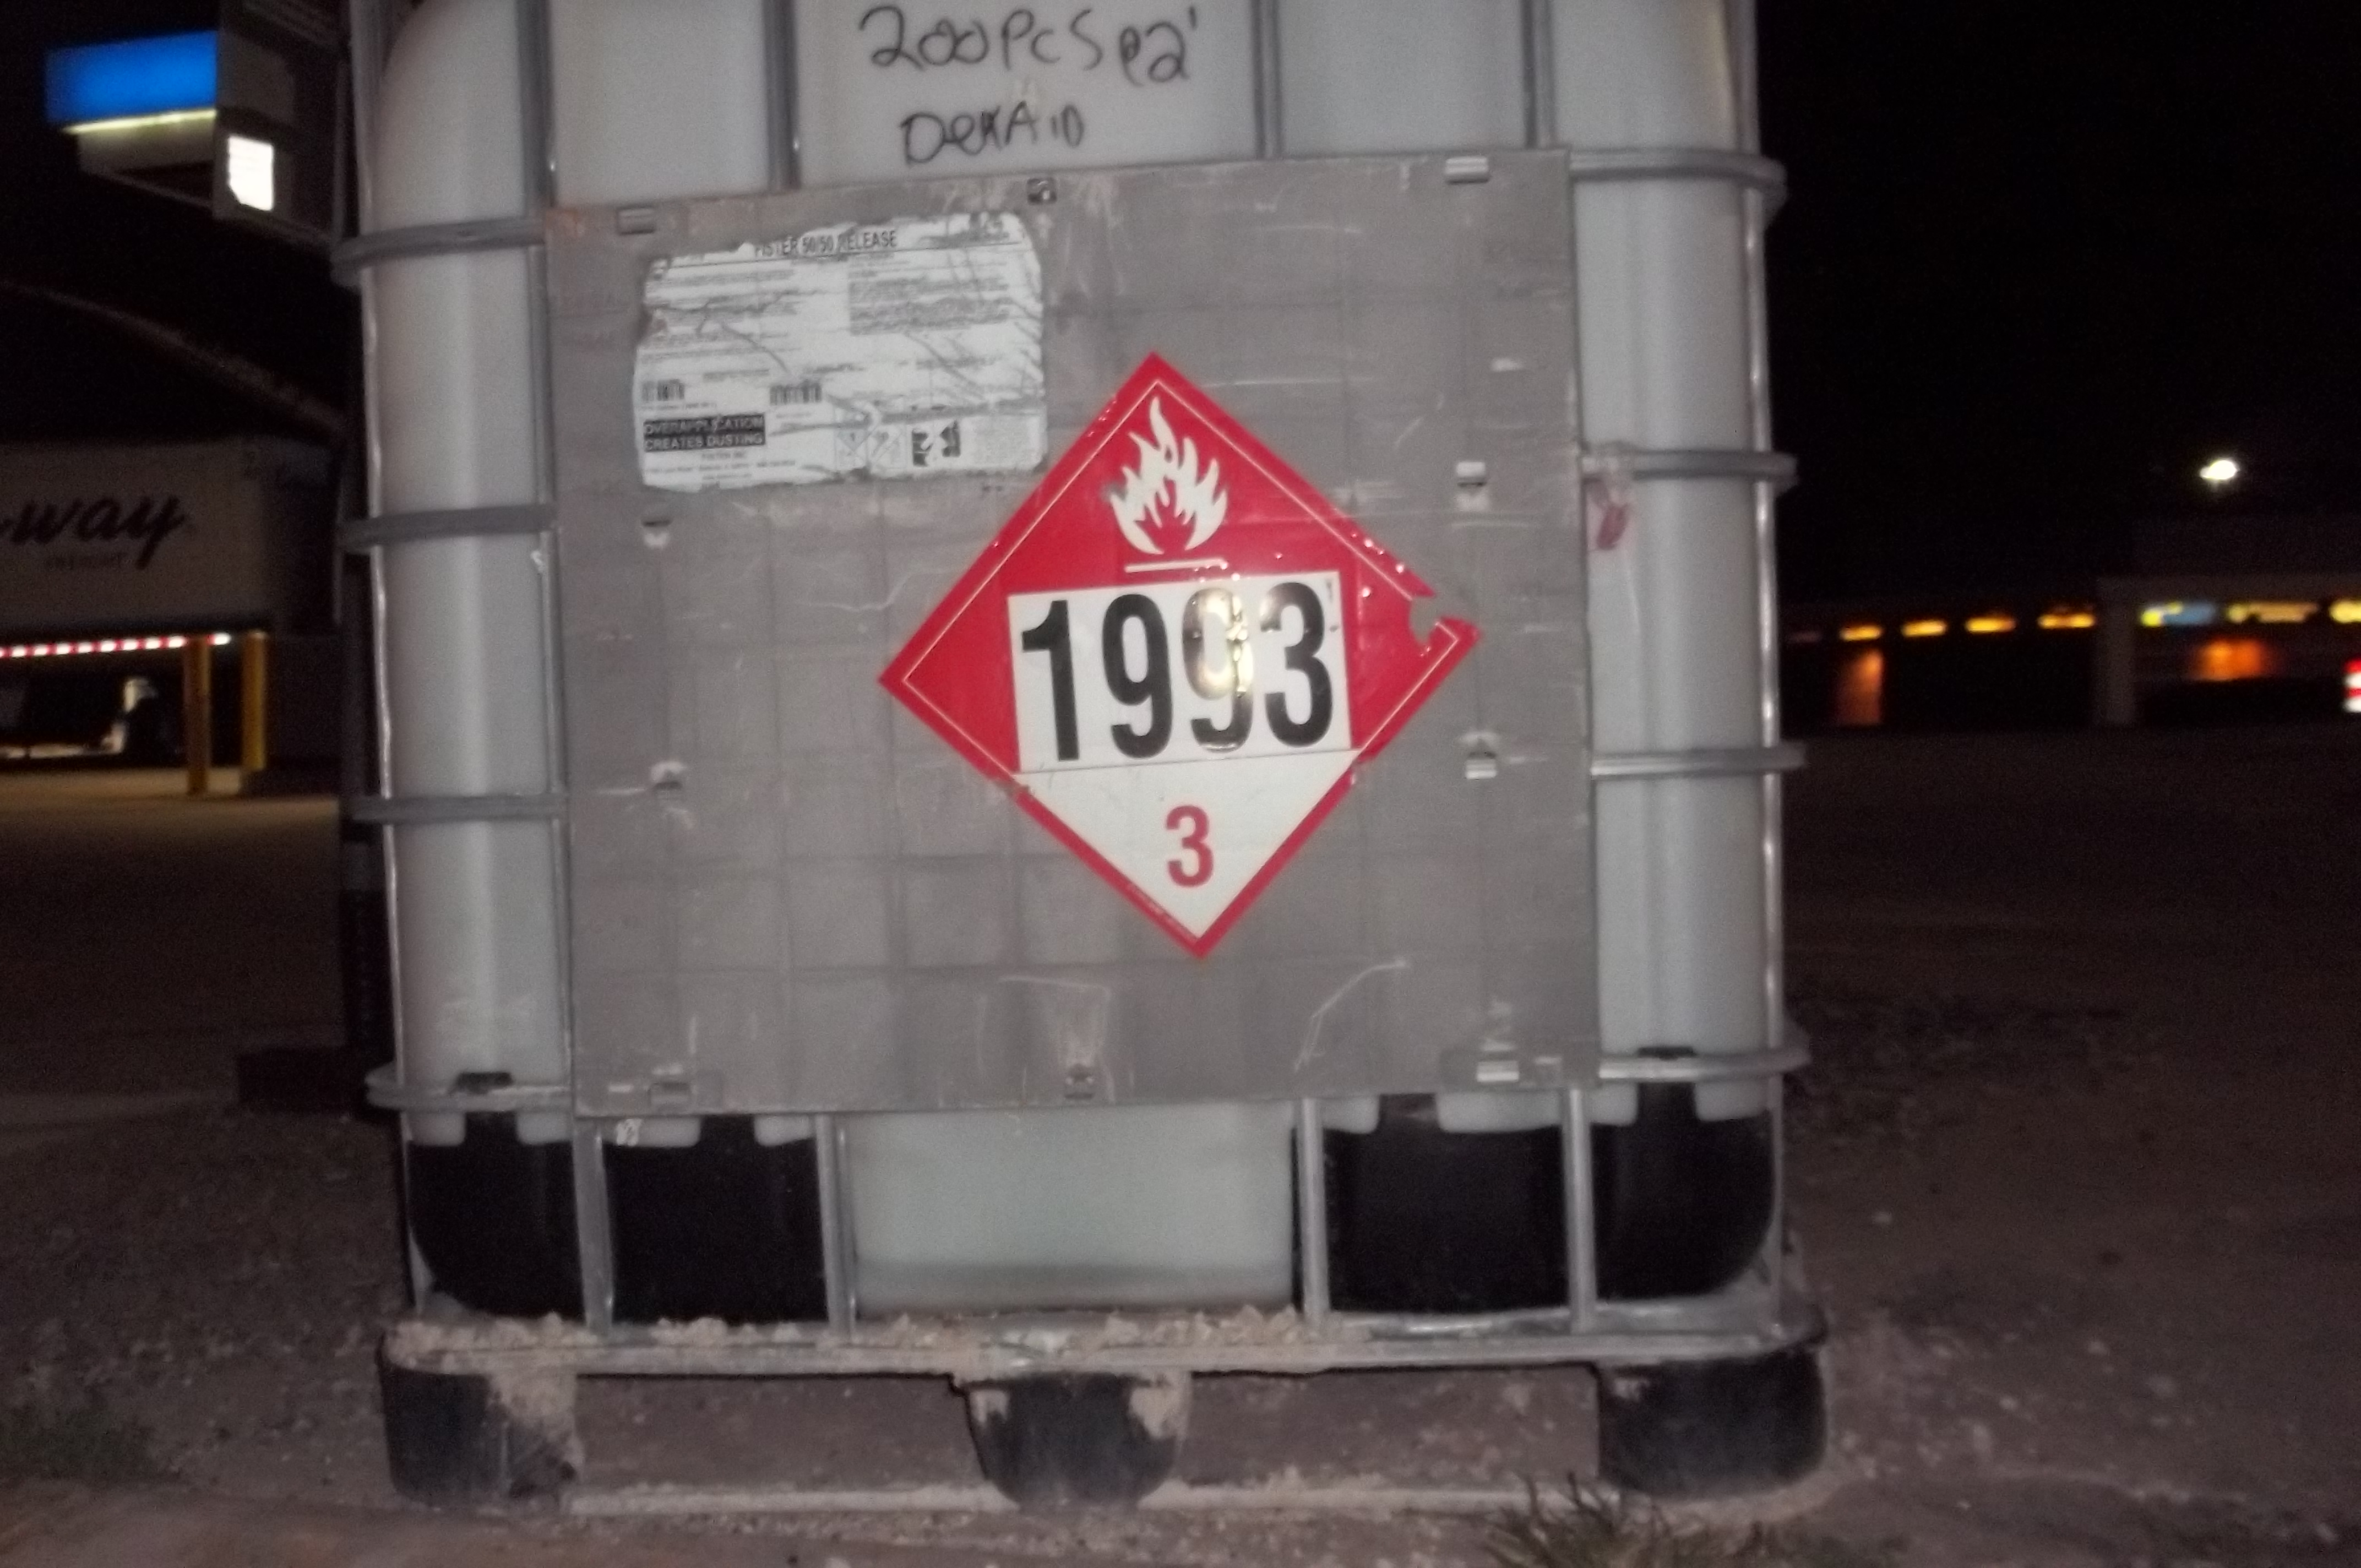 HazMat Labels, Markings, and Placards on an Intermediate